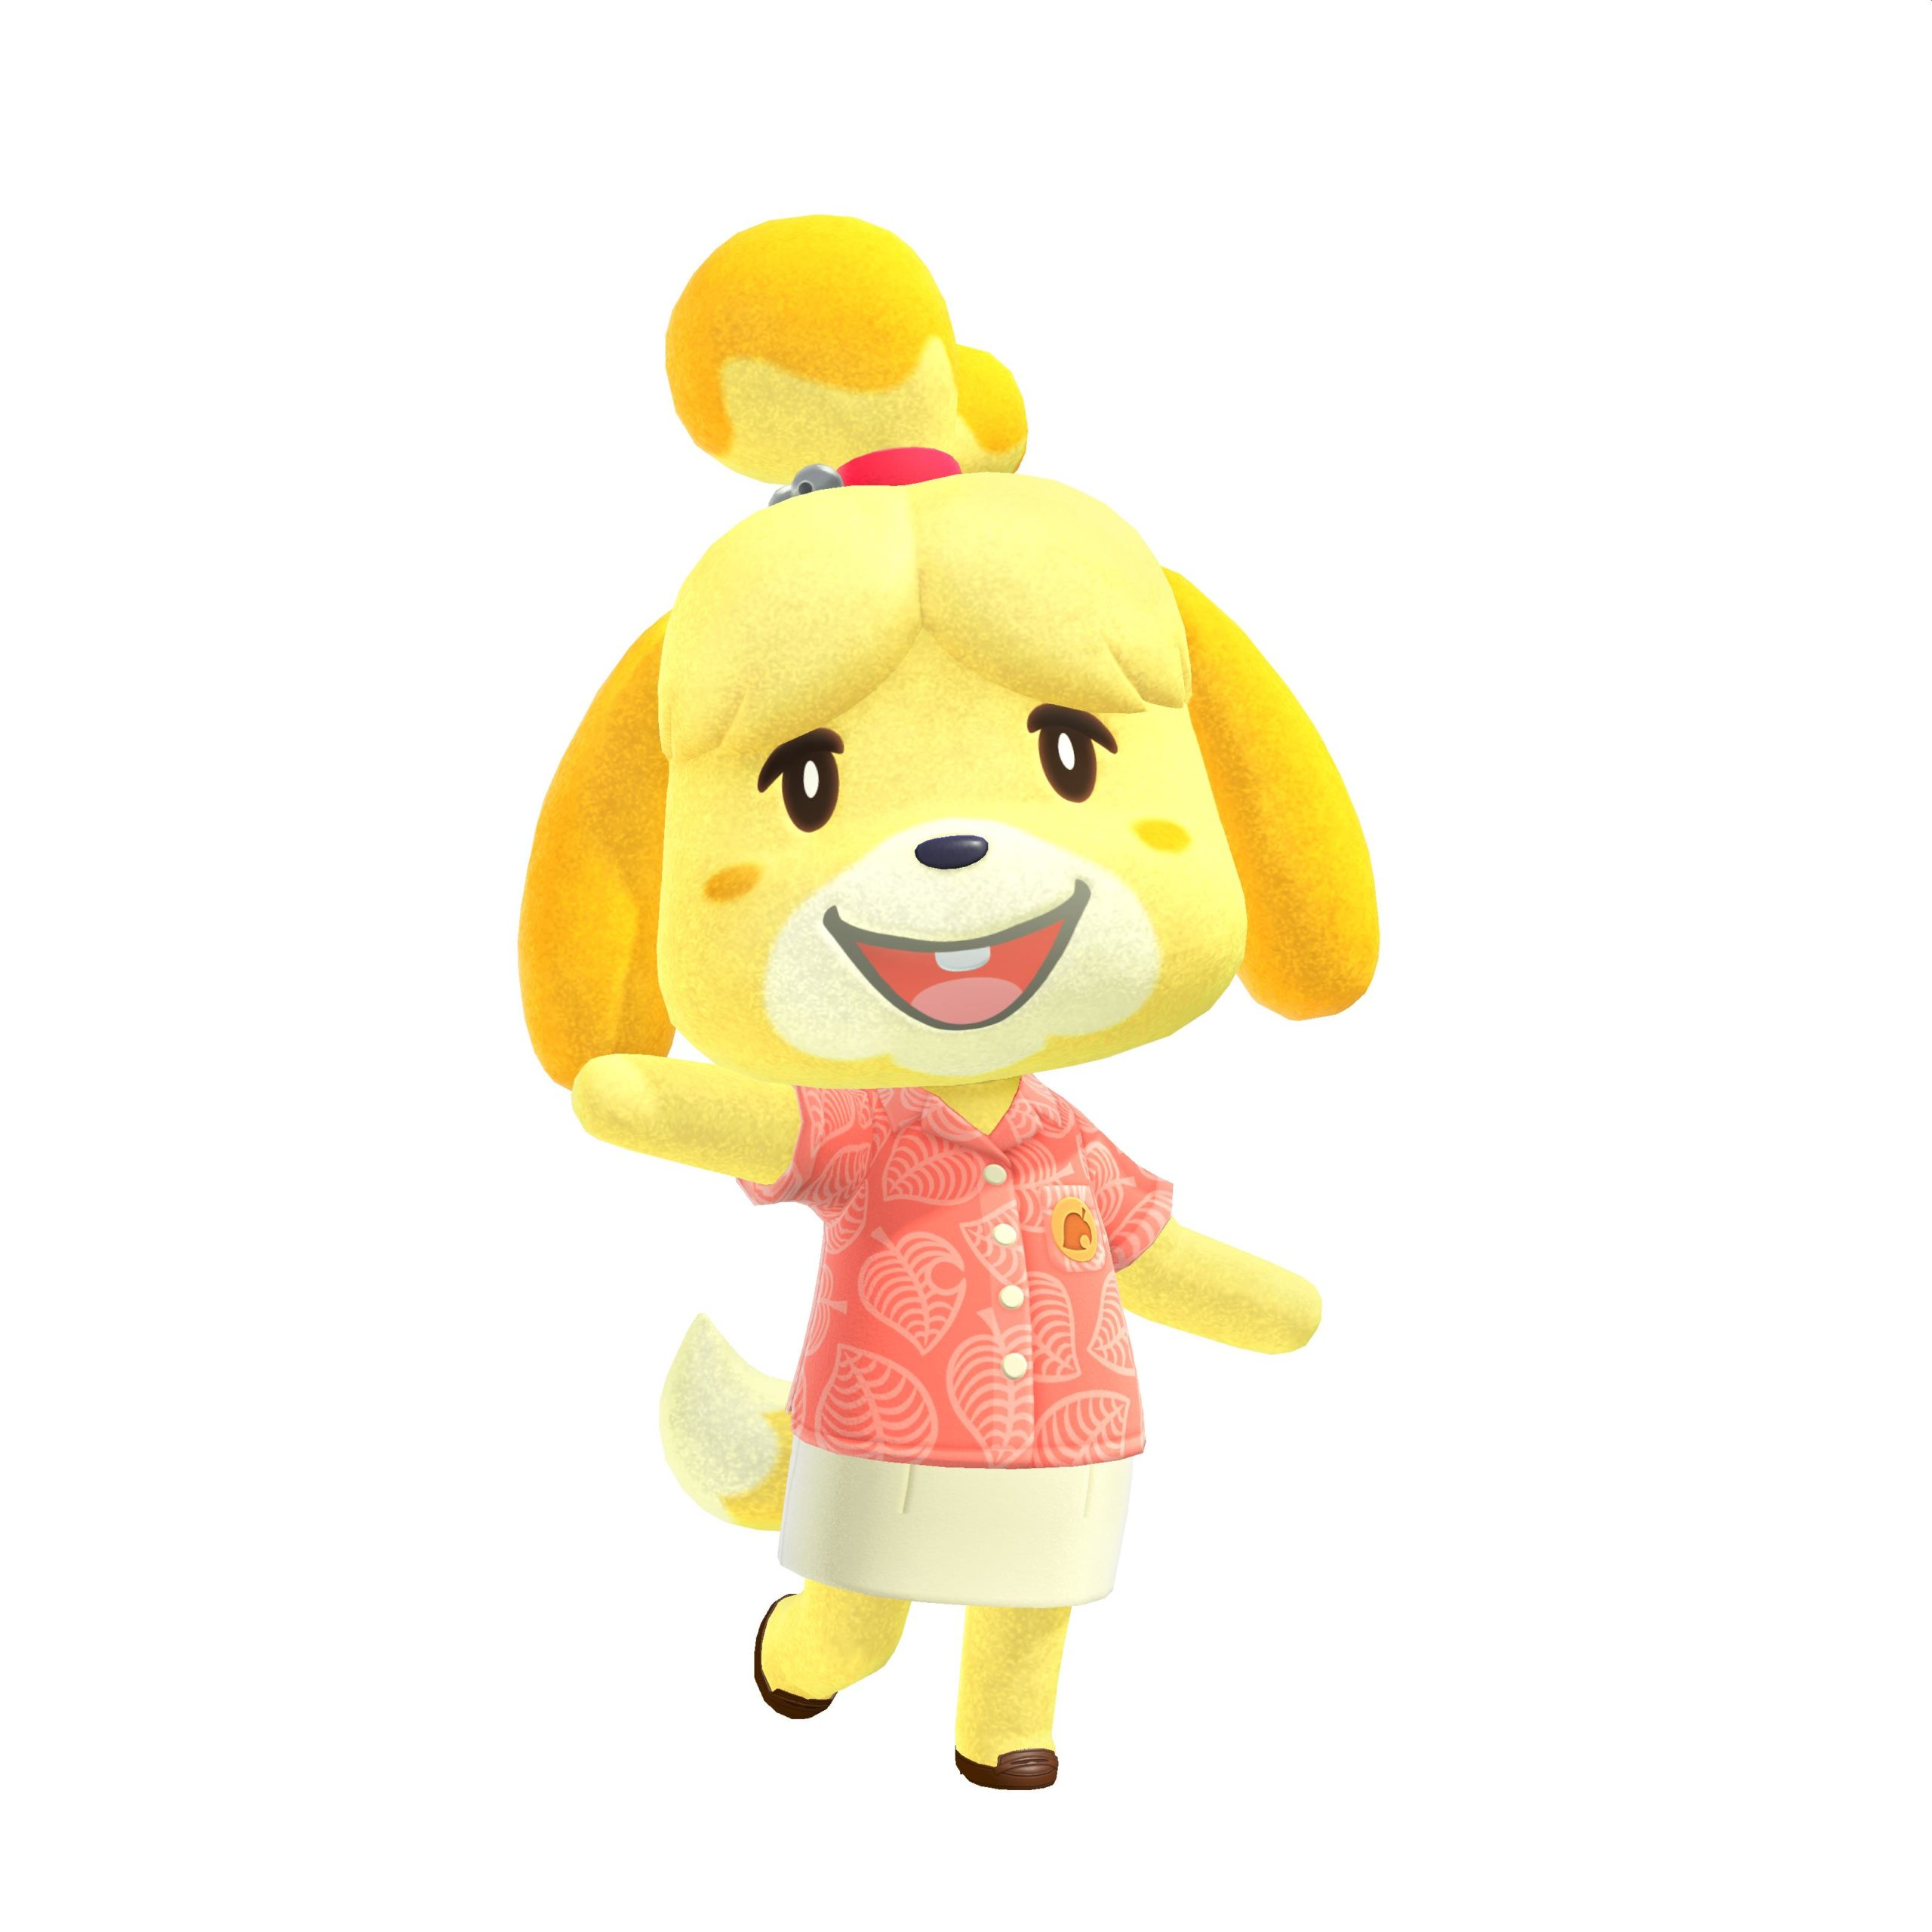 Animal Crossing New Horizons Massive Amount Of Character Art